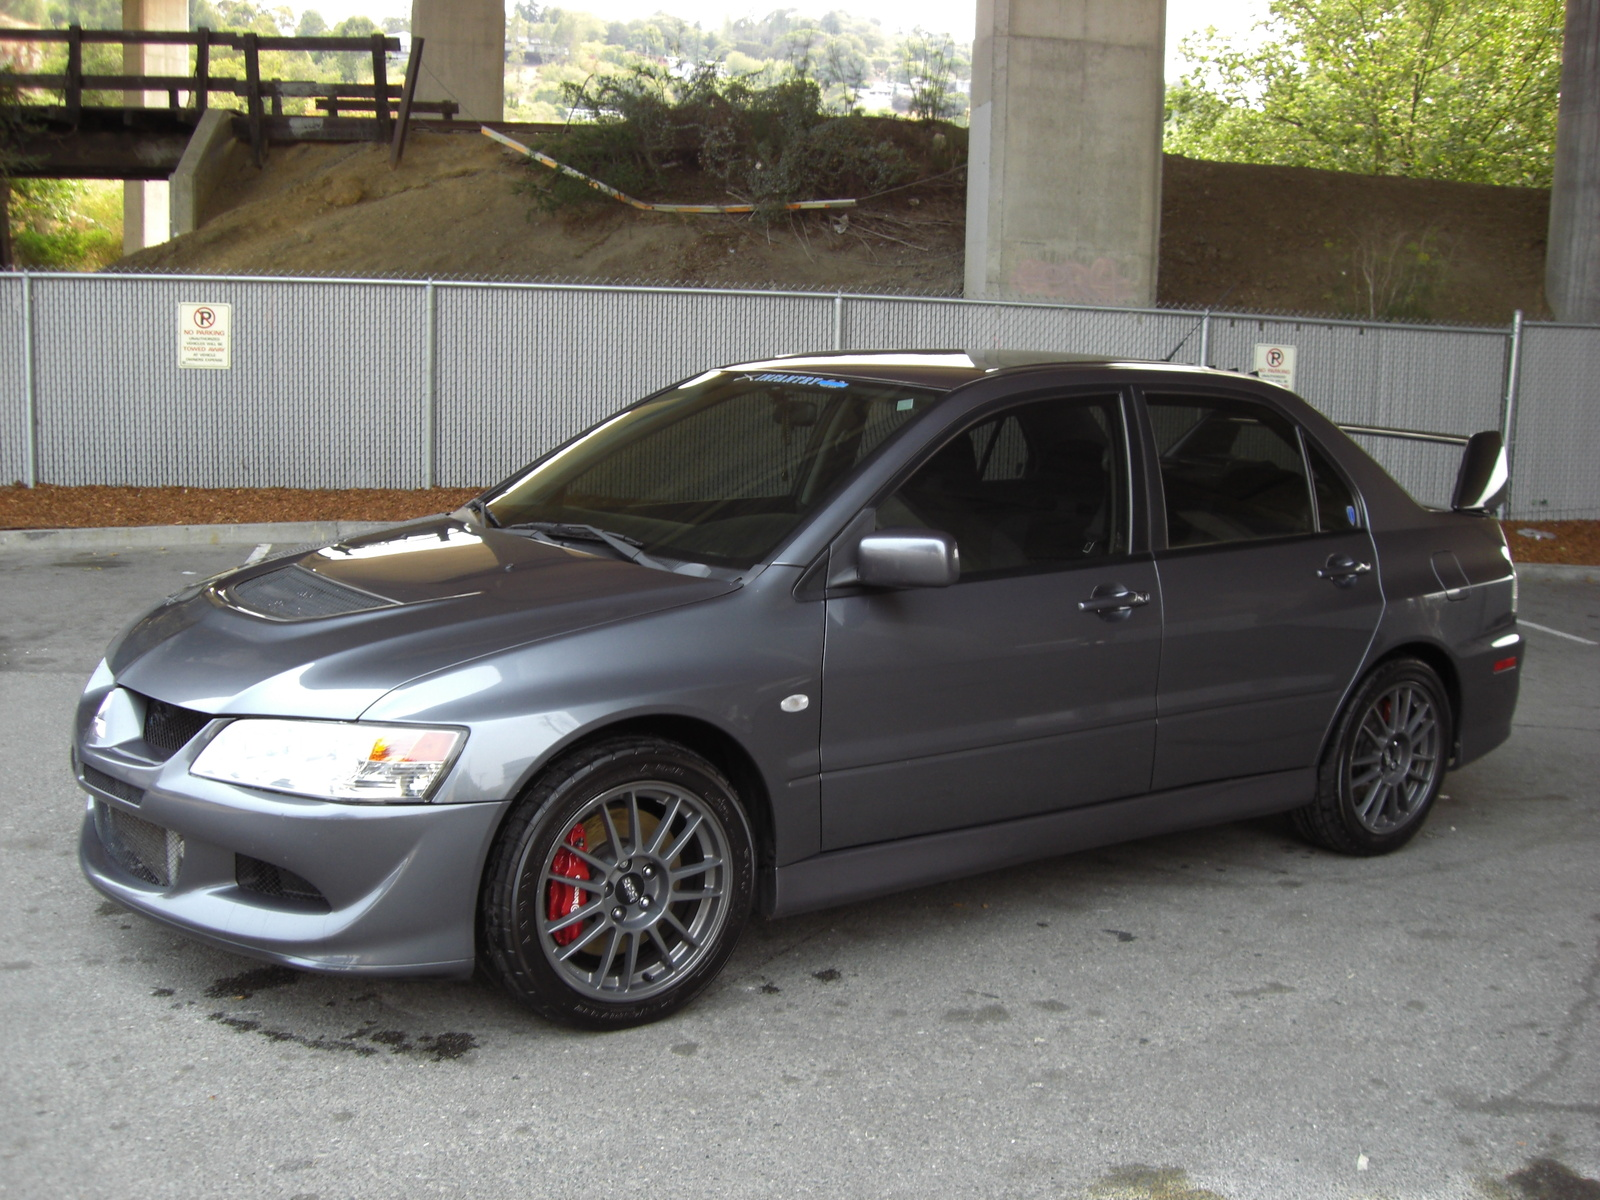 2005 mitsubishi lancer evolution ix fq340 related. Black Bedroom Furniture Sets. Home Design Ideas